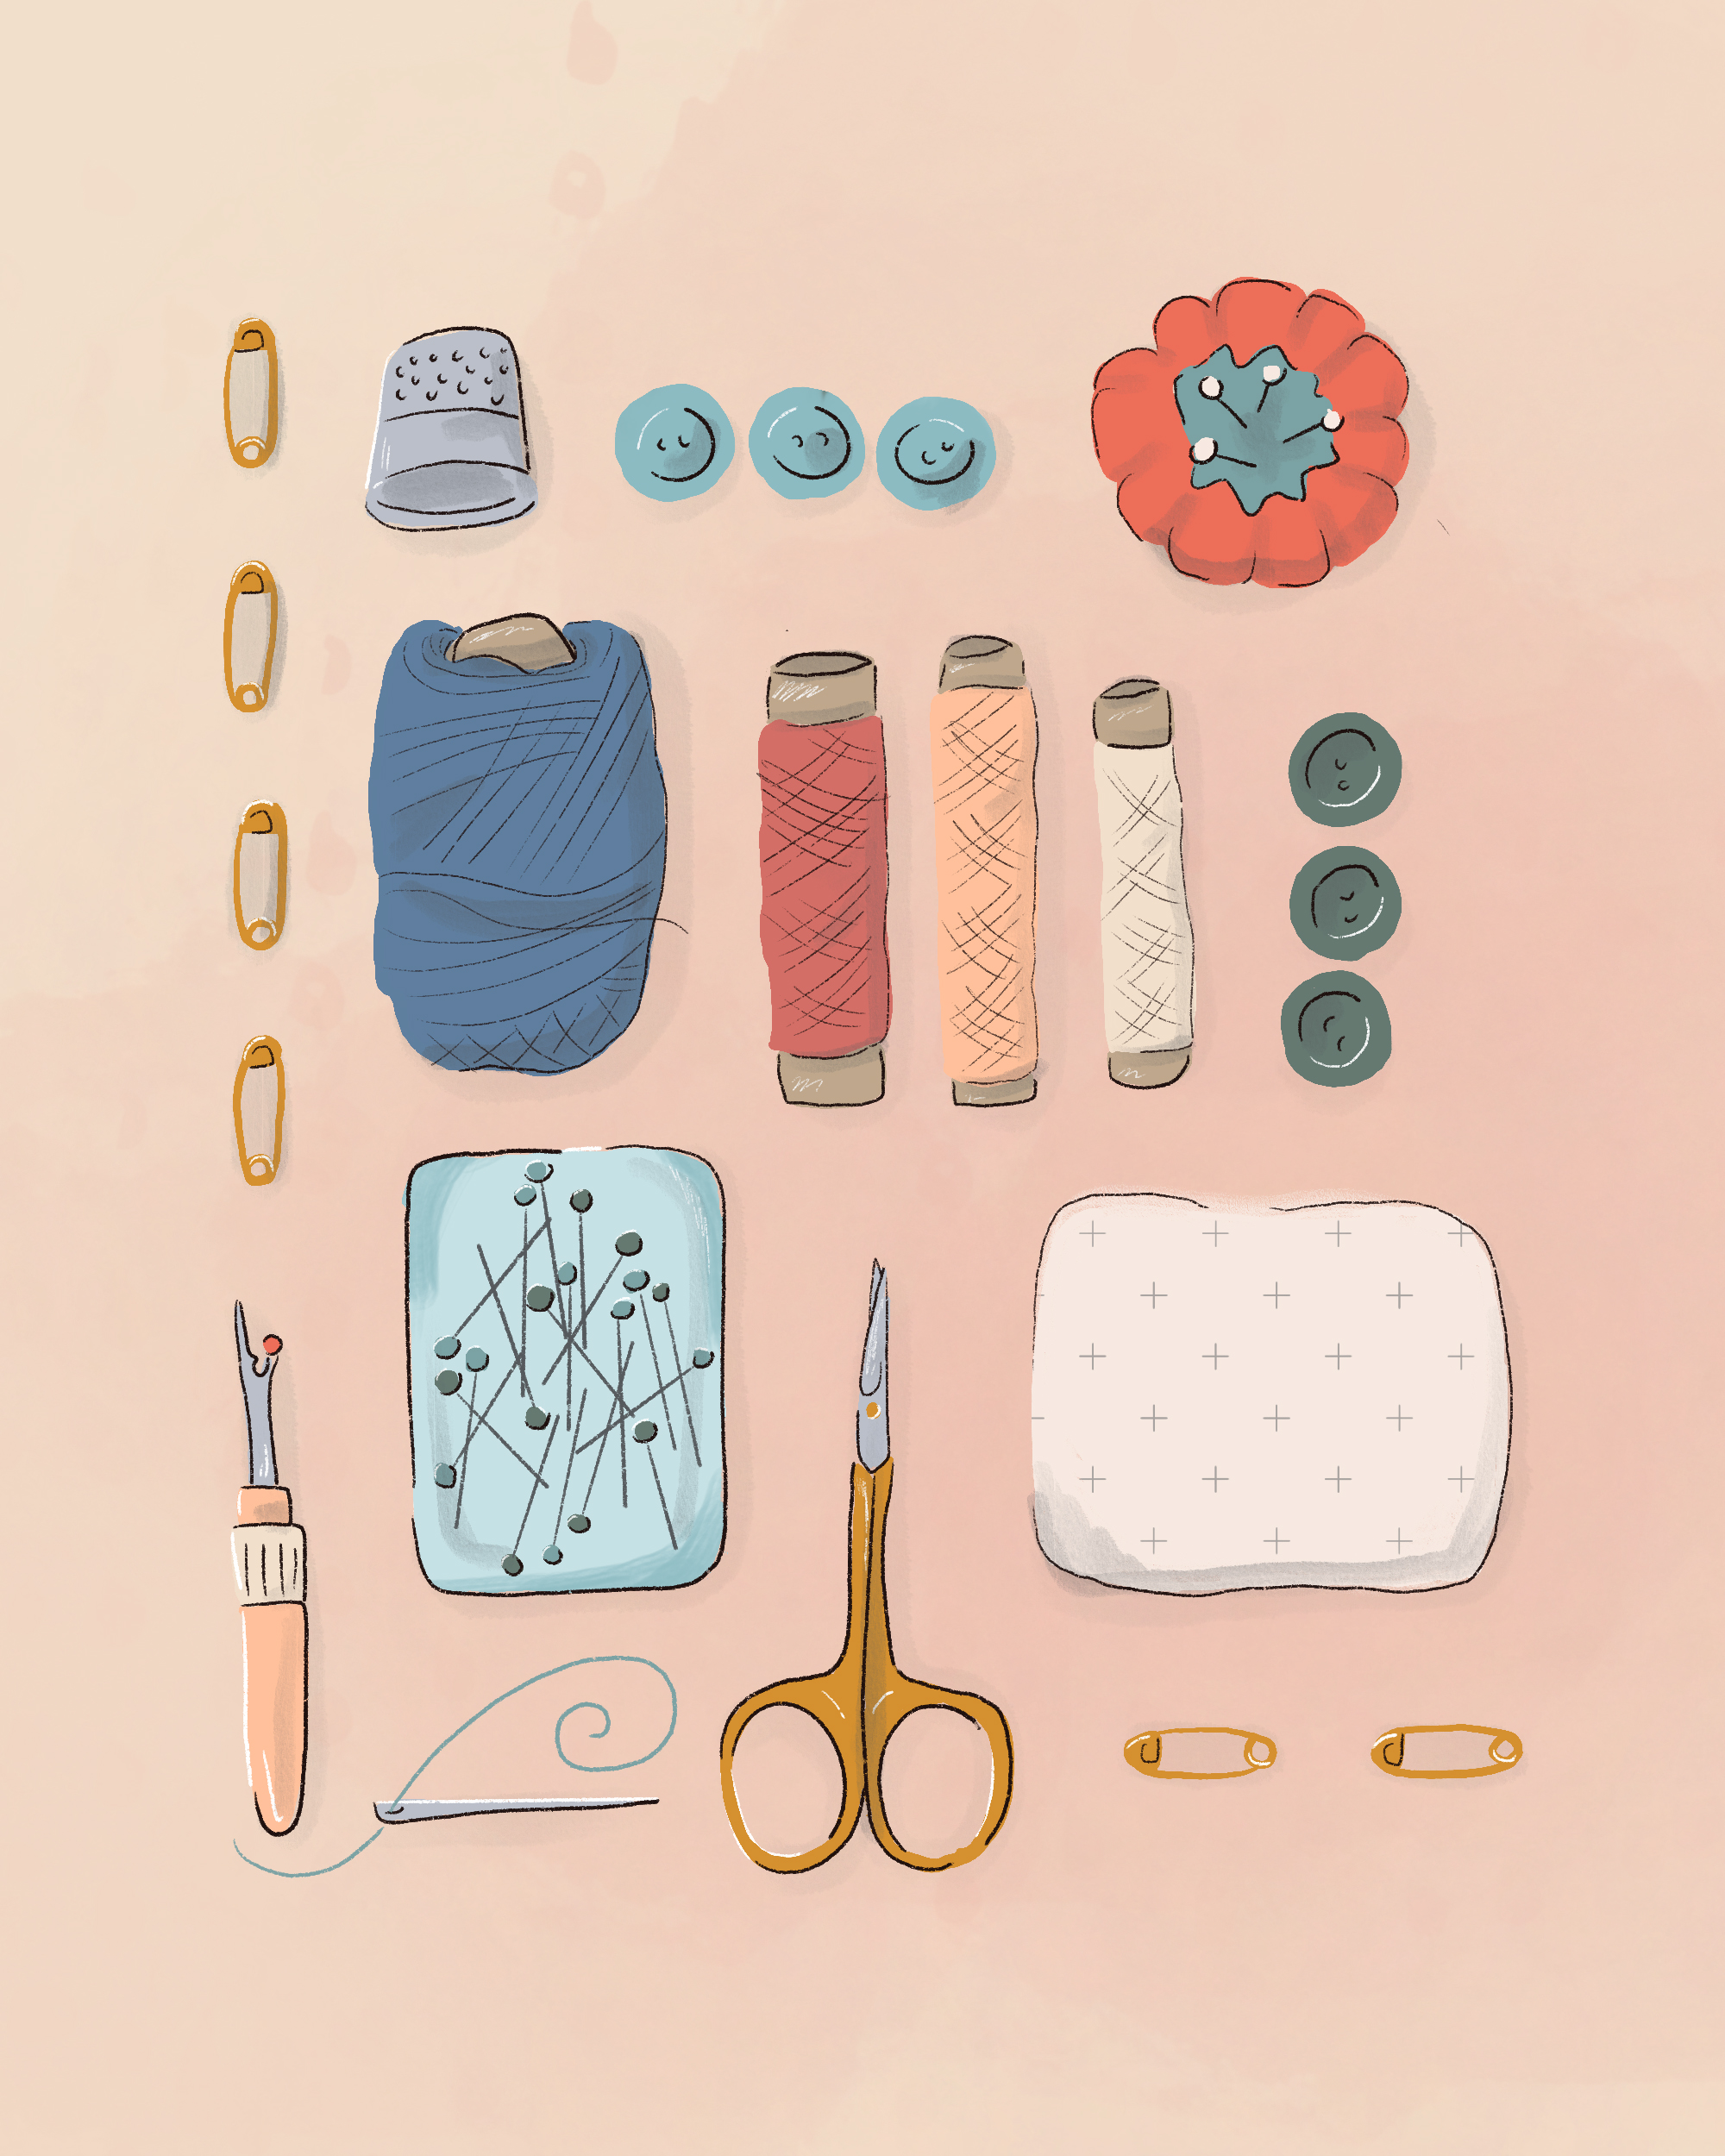 An Illustrated Guide to Sewing Stitches for Beginners